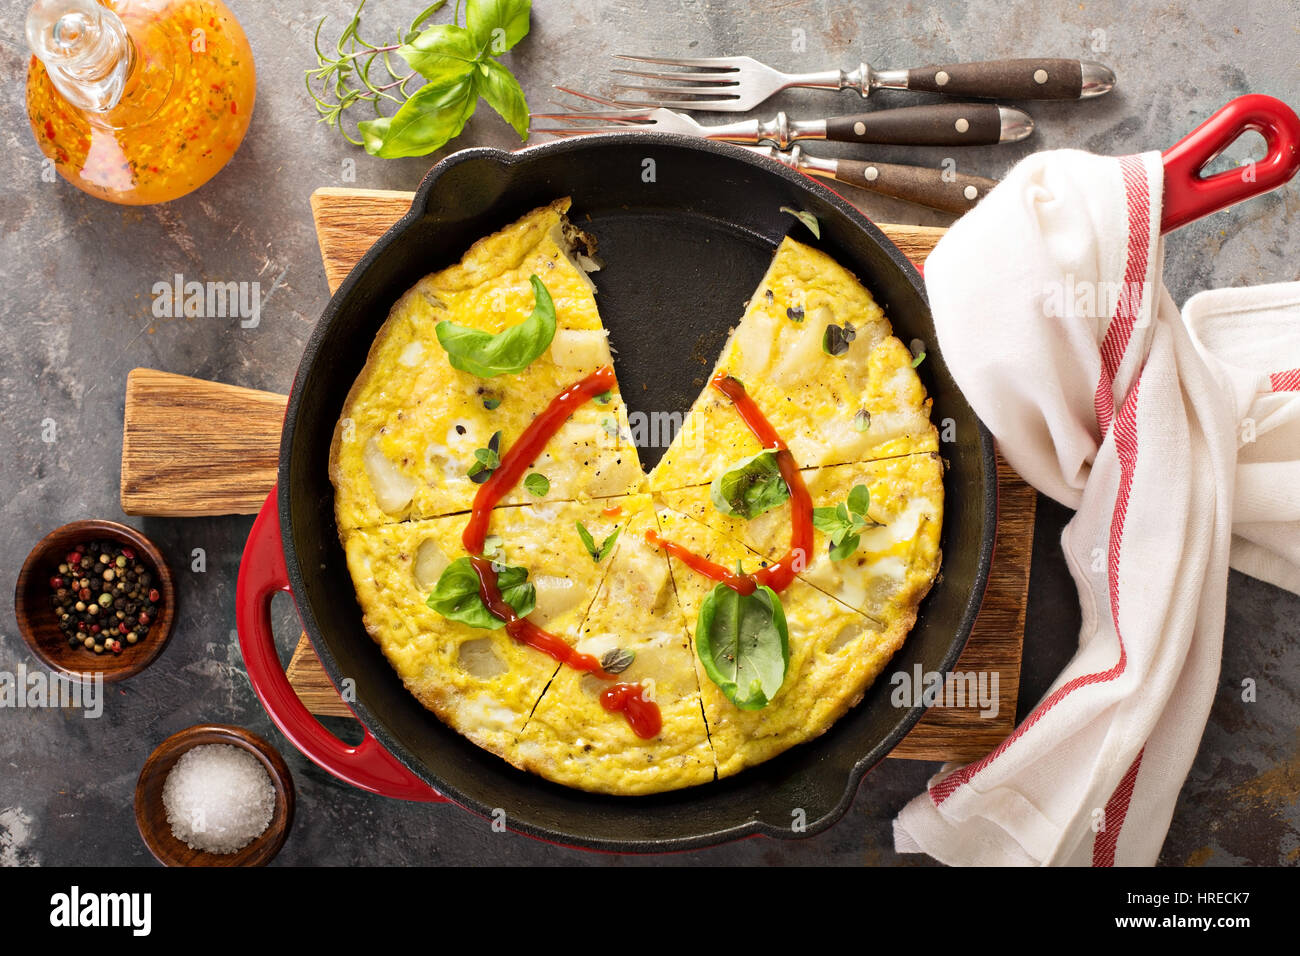 Potato and herbs fritatta - Stock Image